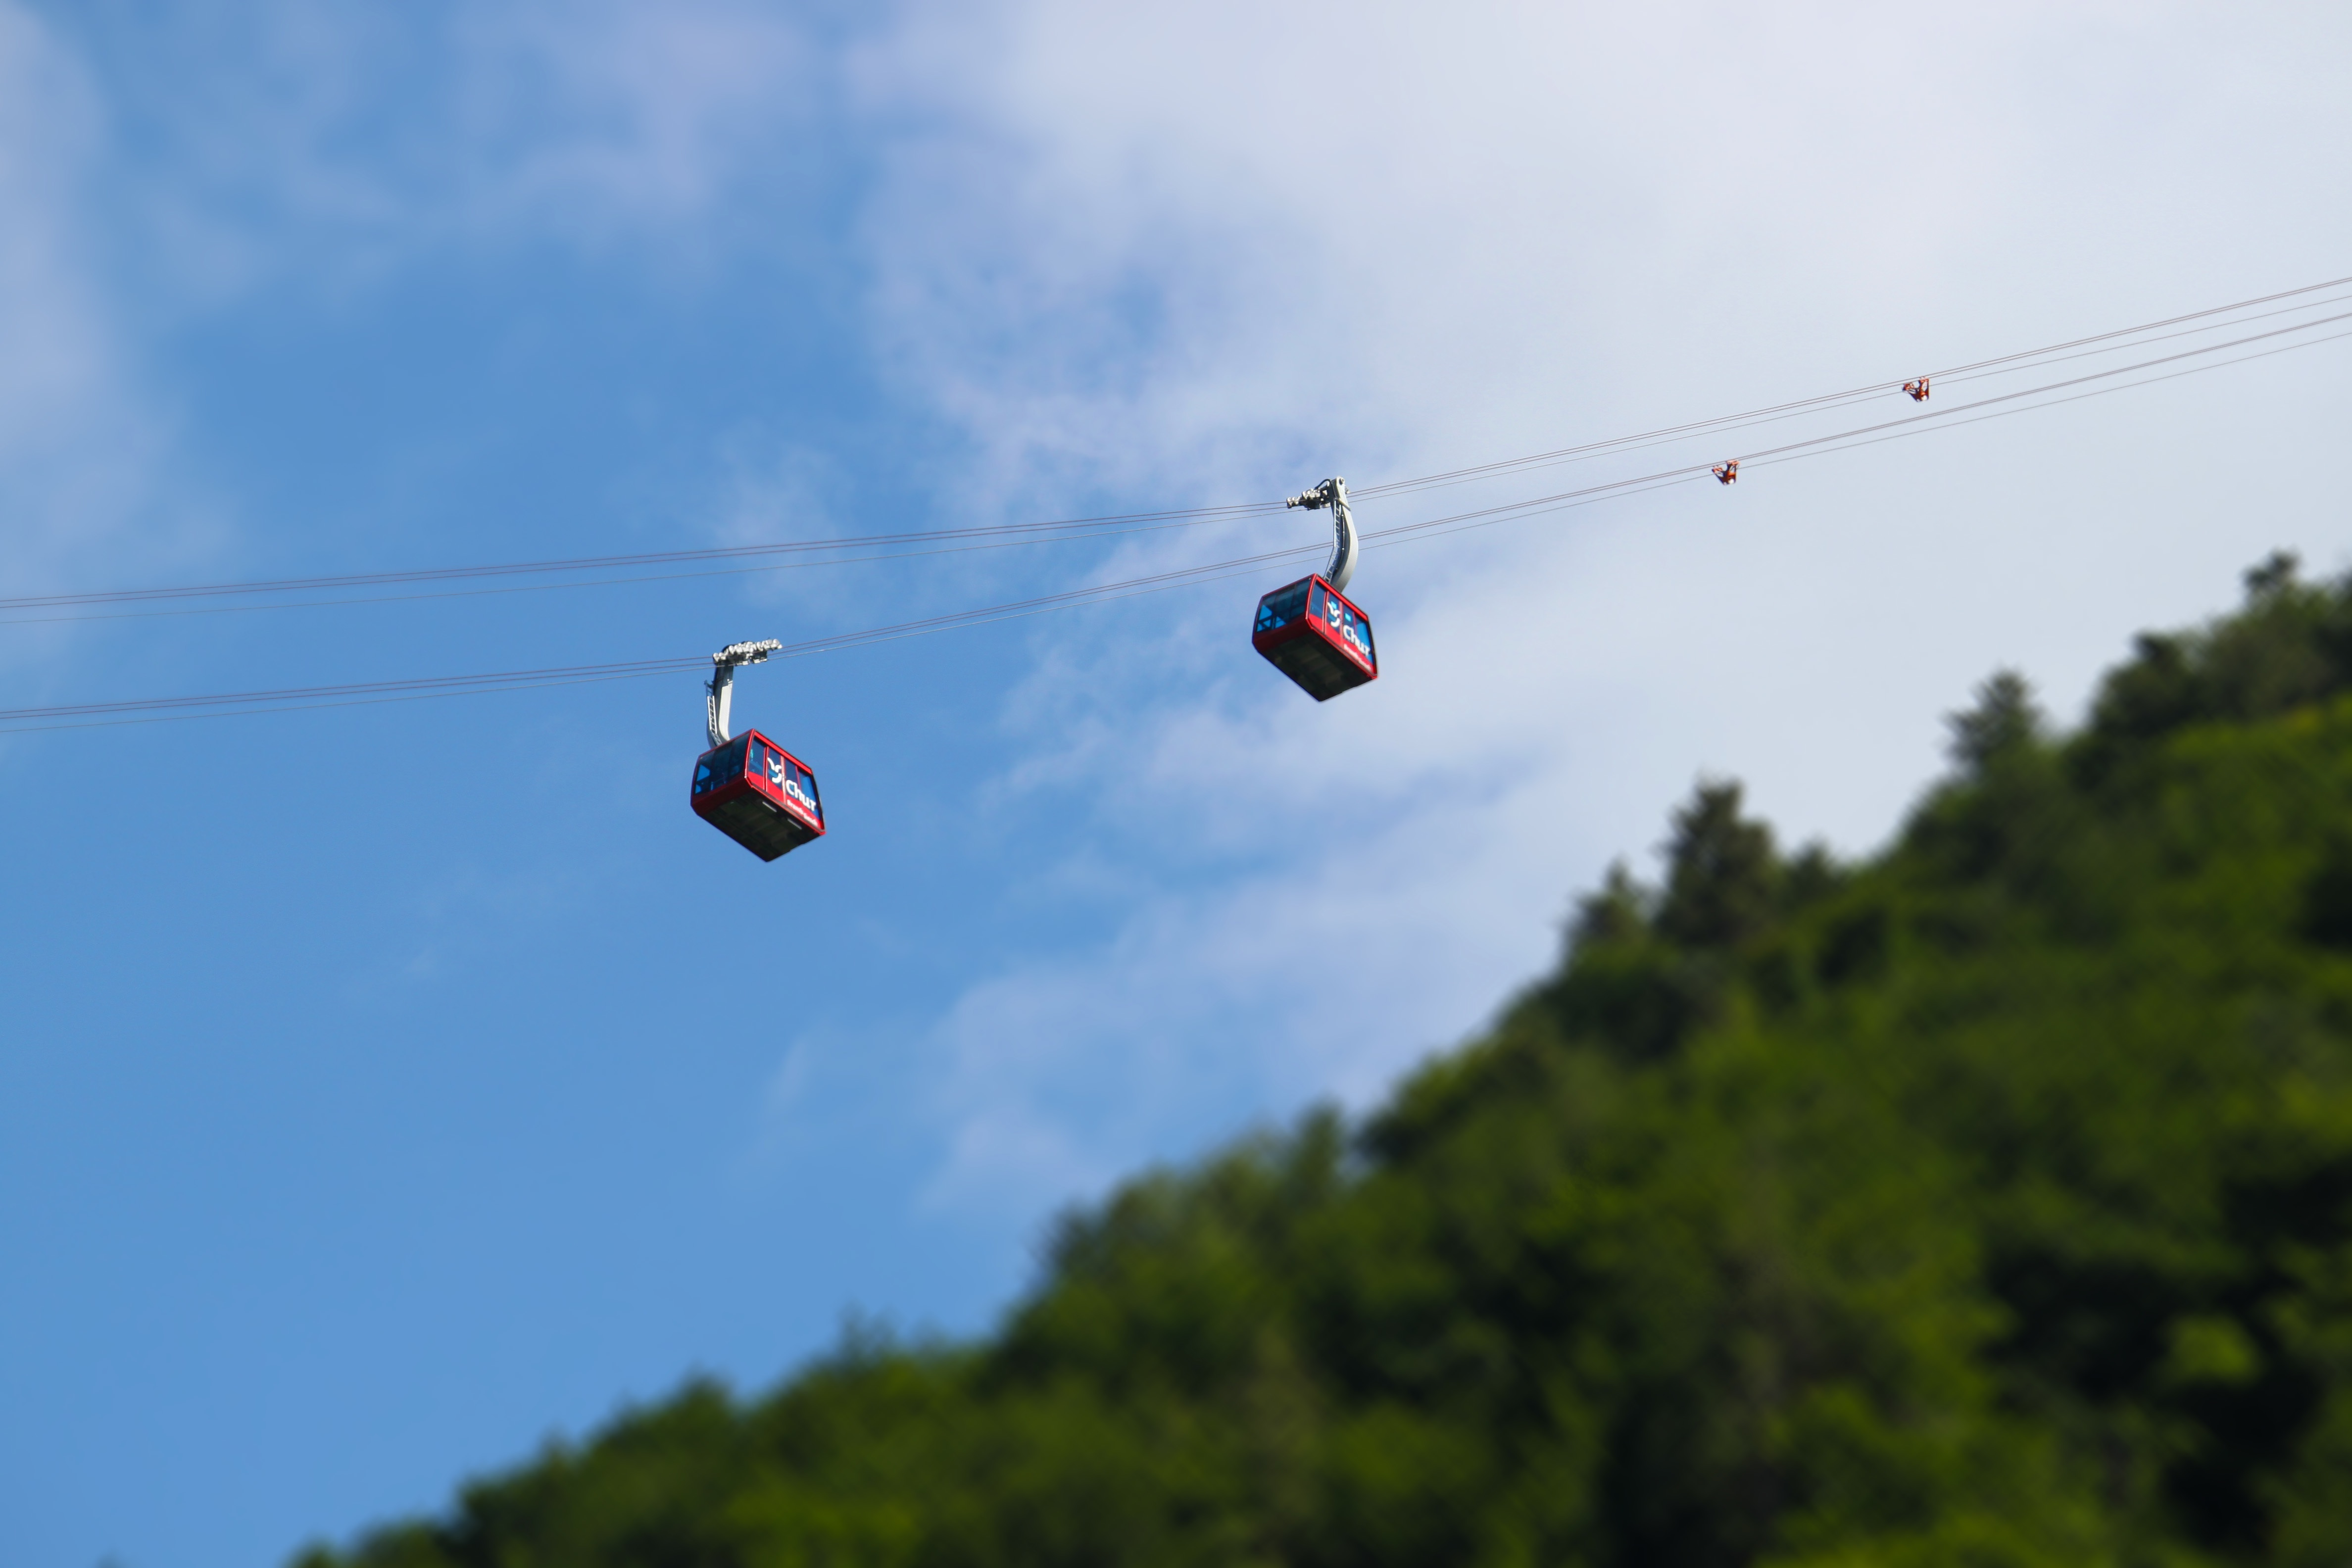 Chairlift, Above, Cable, Green, Joy, HQ Photo